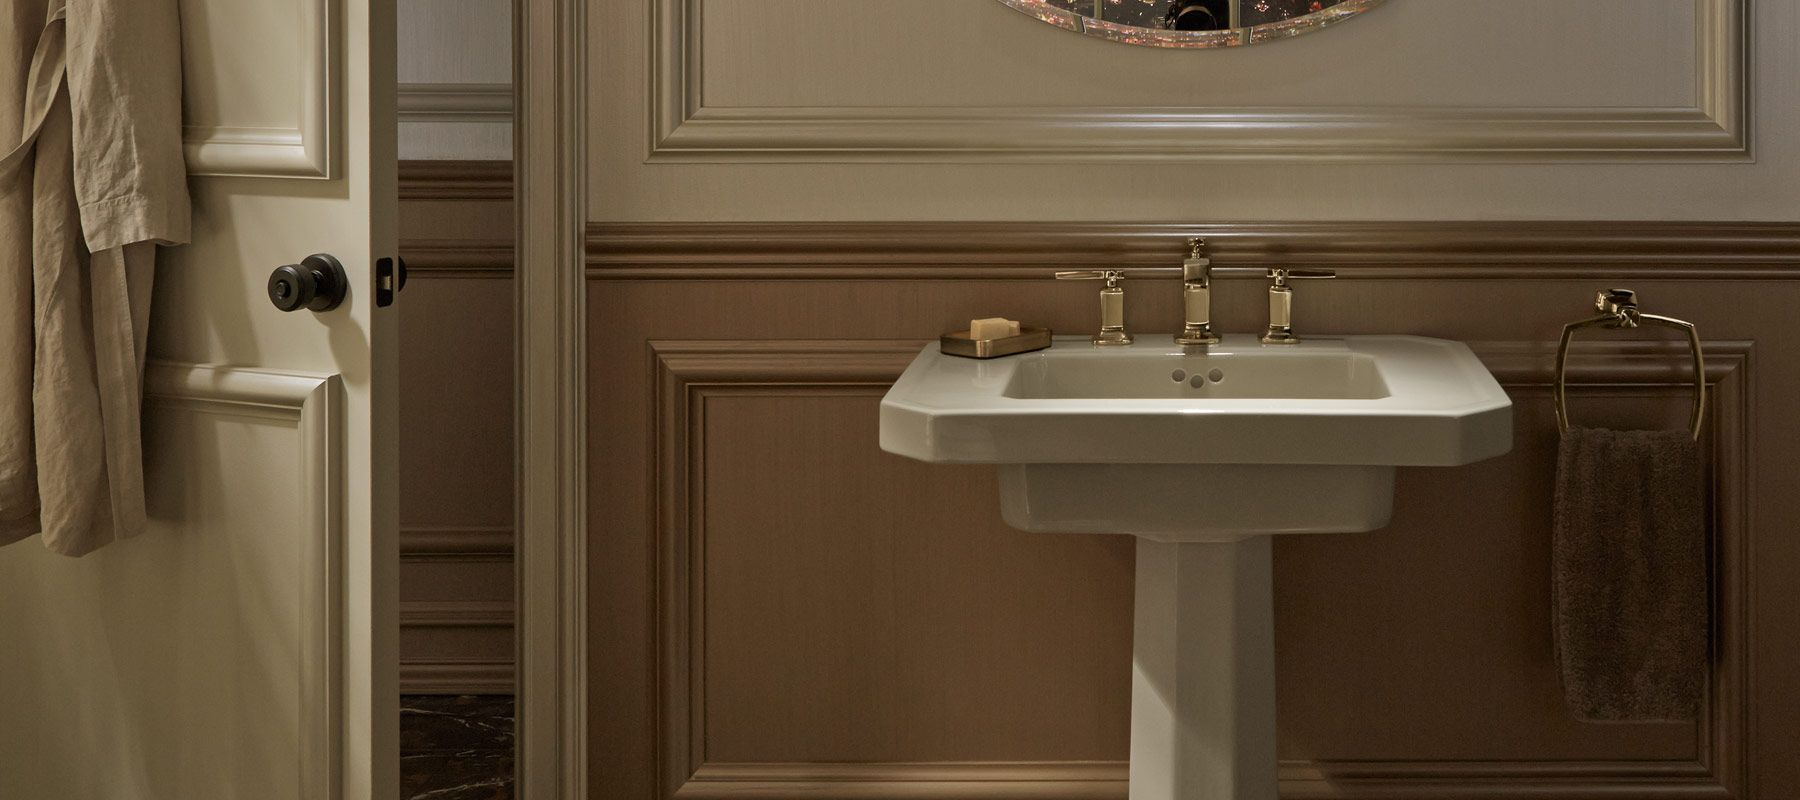 Delightful Pedestal Bathroom Sinks | Bathroom | KOHLER Pictures